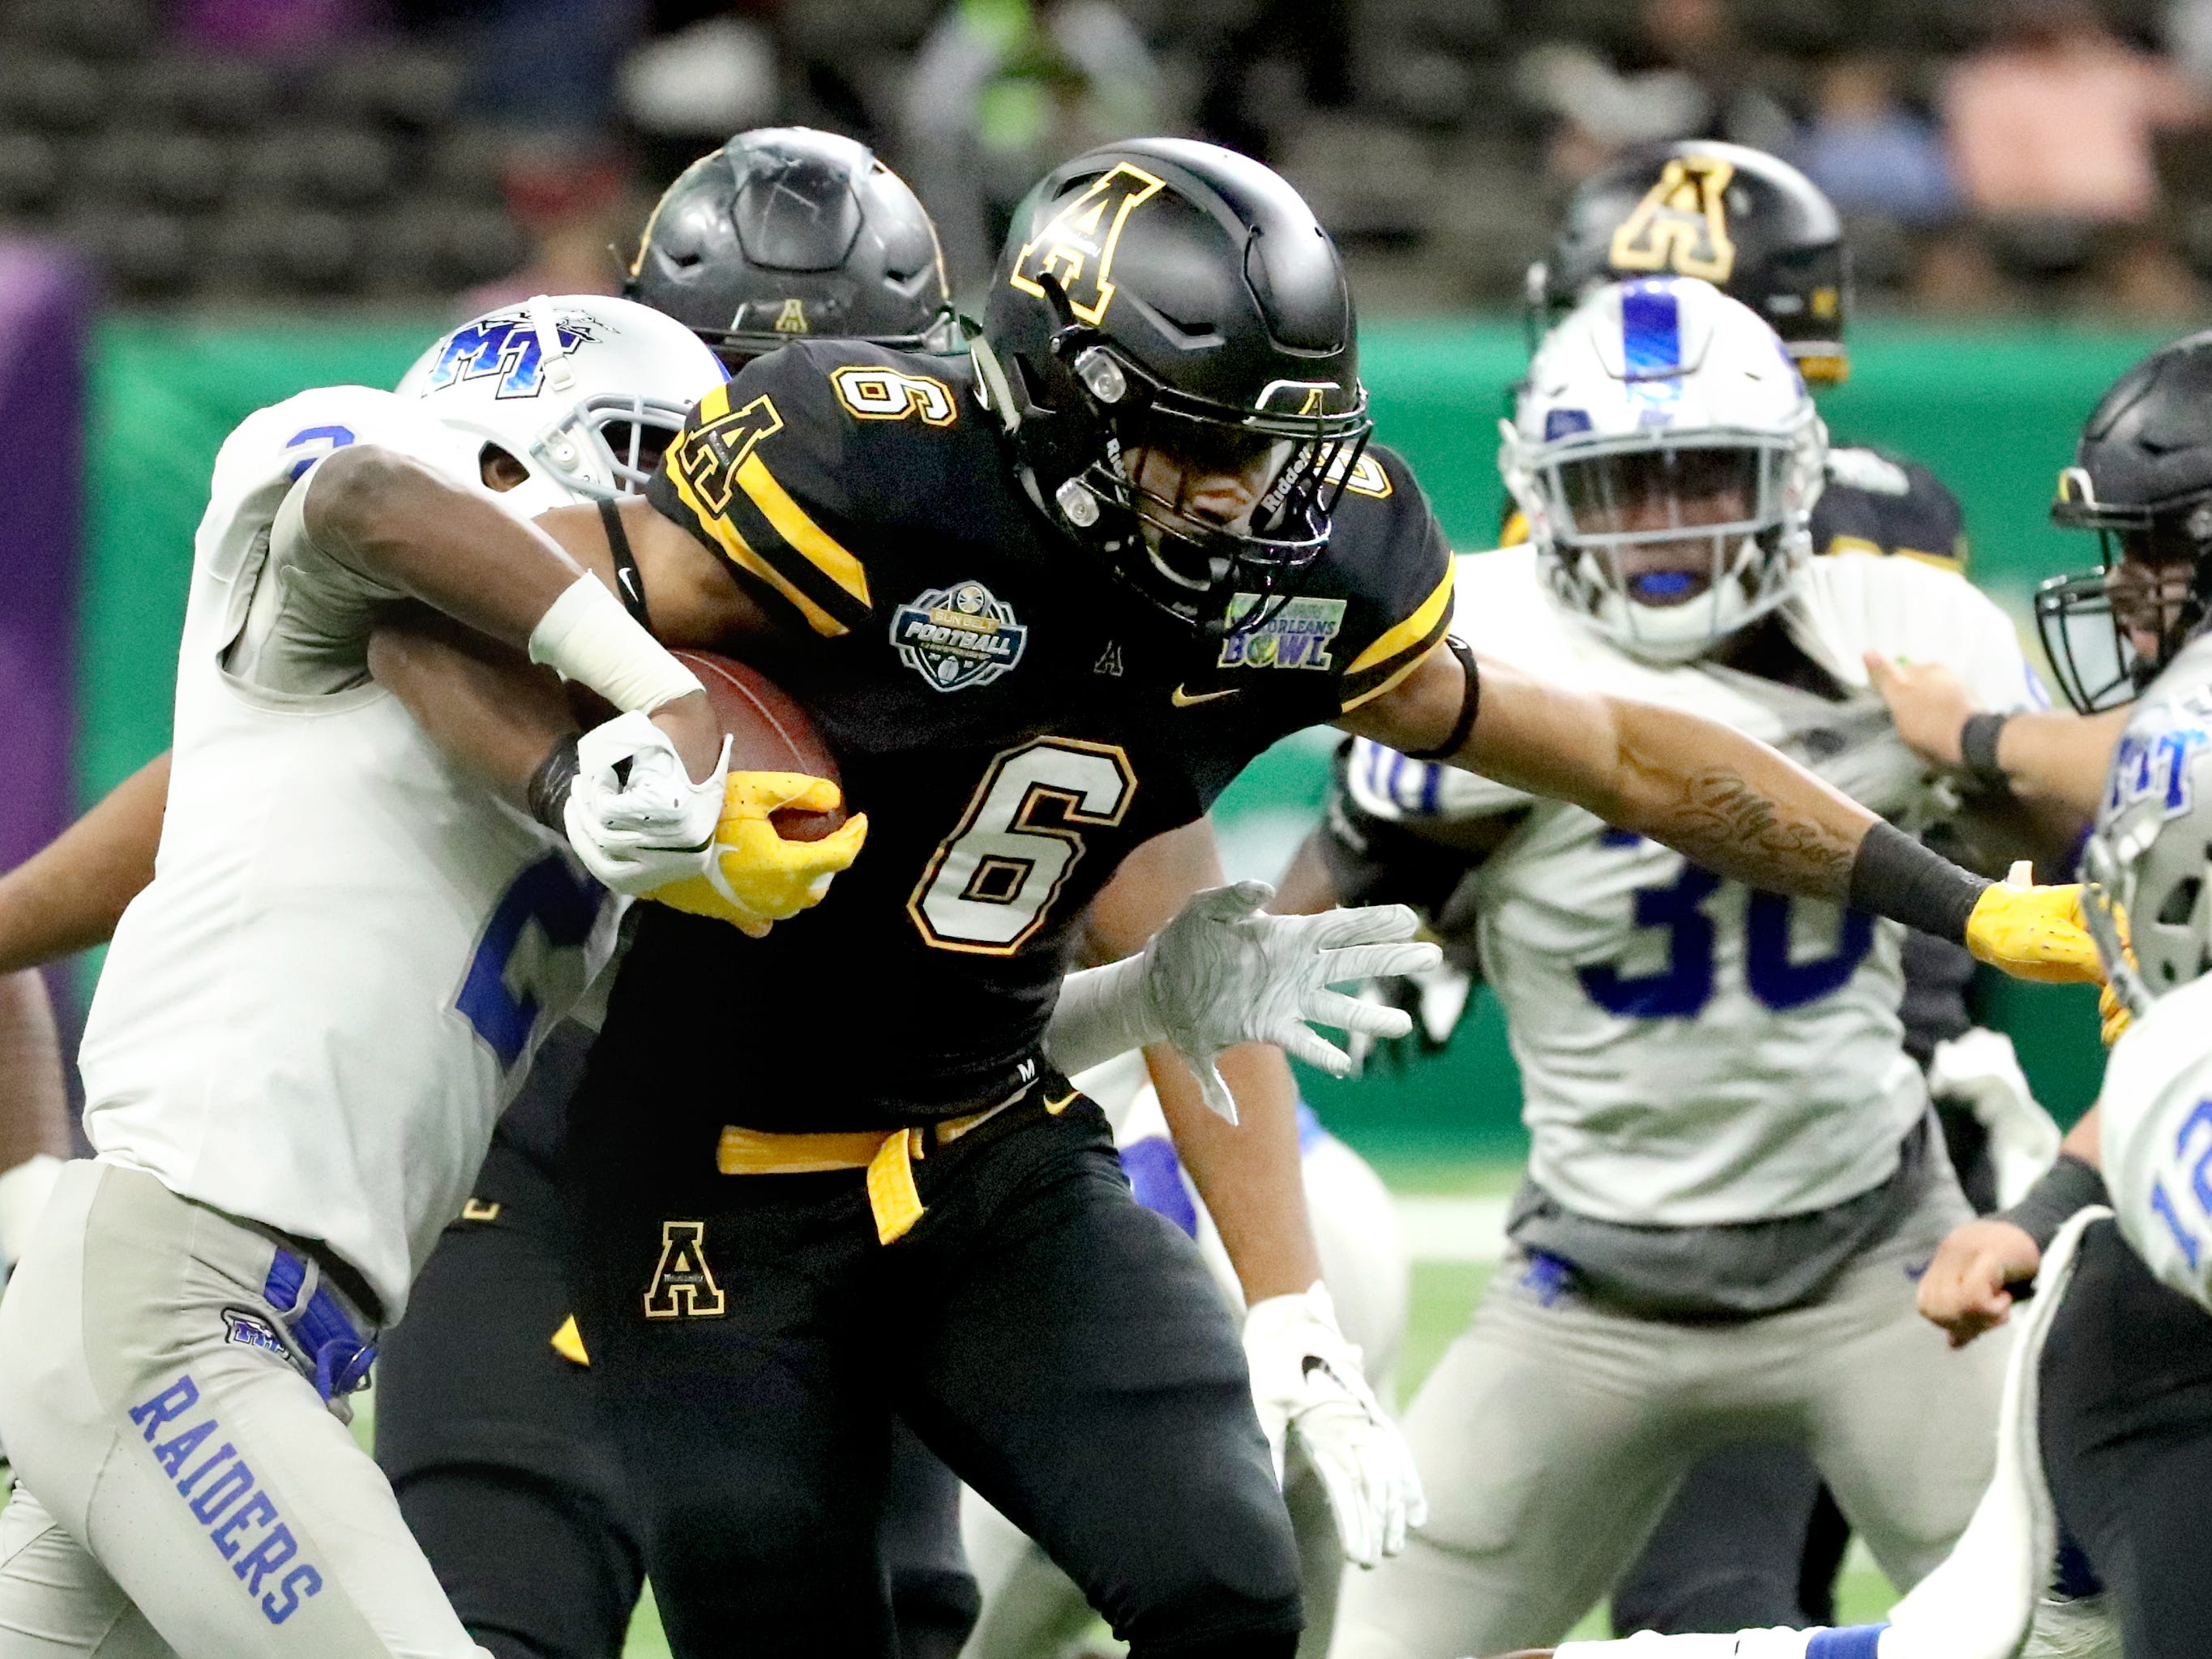 Appalachian State Mountaineers running back Camerun Peoples (6) runs the ball as Middle Tennessee Blue Raiders defensive back Chris Stamps (2) tackles him on Saturday, Dec. 15, 2018, during the New Orleans Bowl.